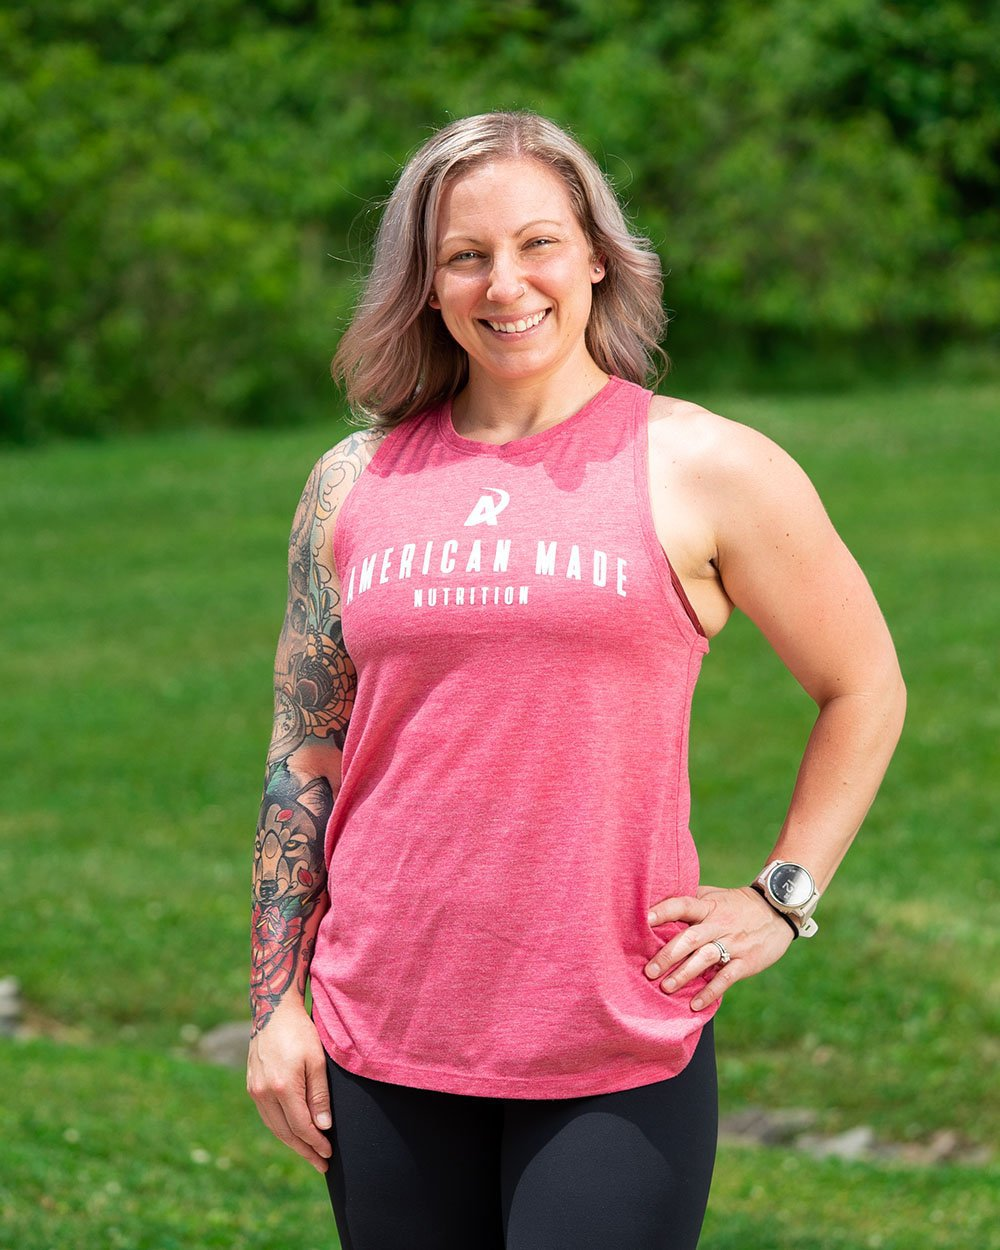 American Made Nutrition APPAREL XS Ladies Racerback Tank // Heather Pink